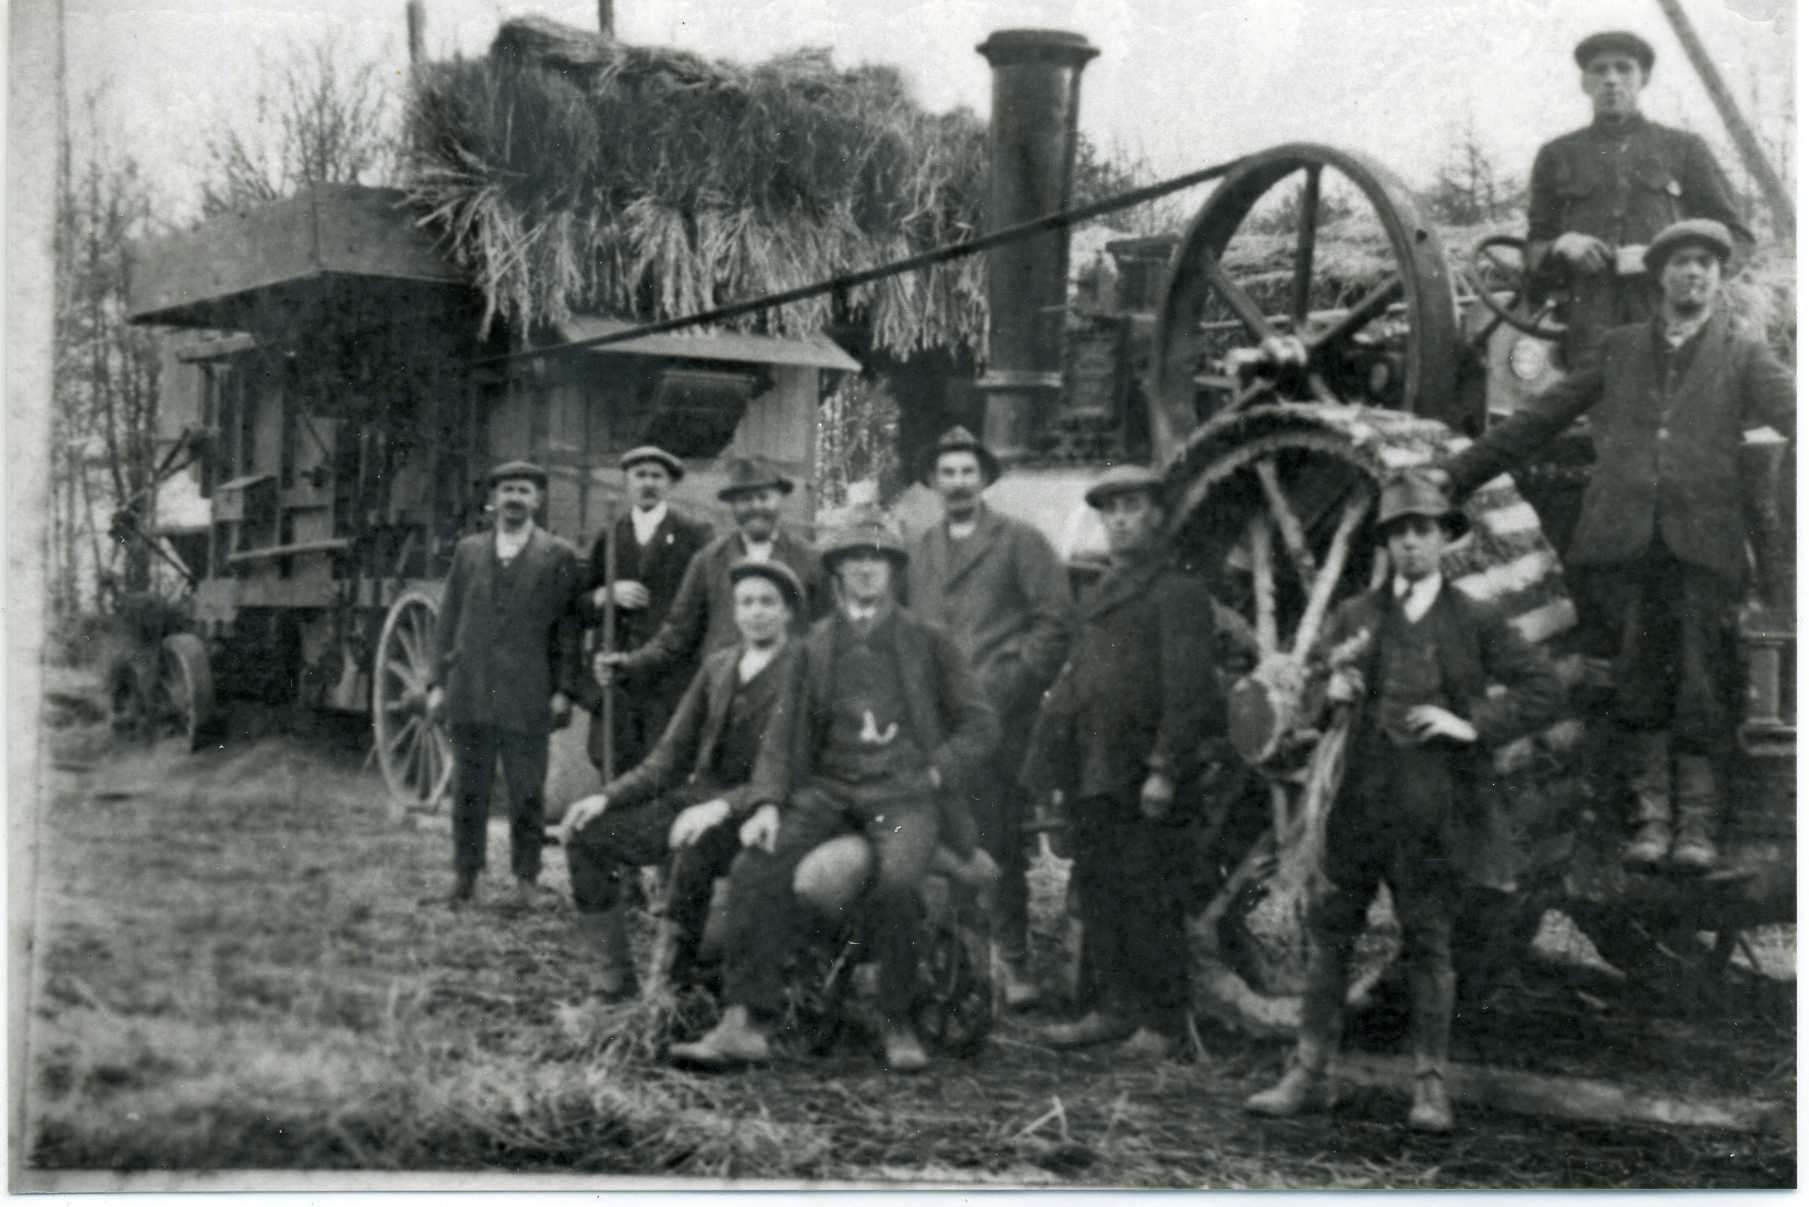 Steam Driven Farm Machinery and Hay Making Gang